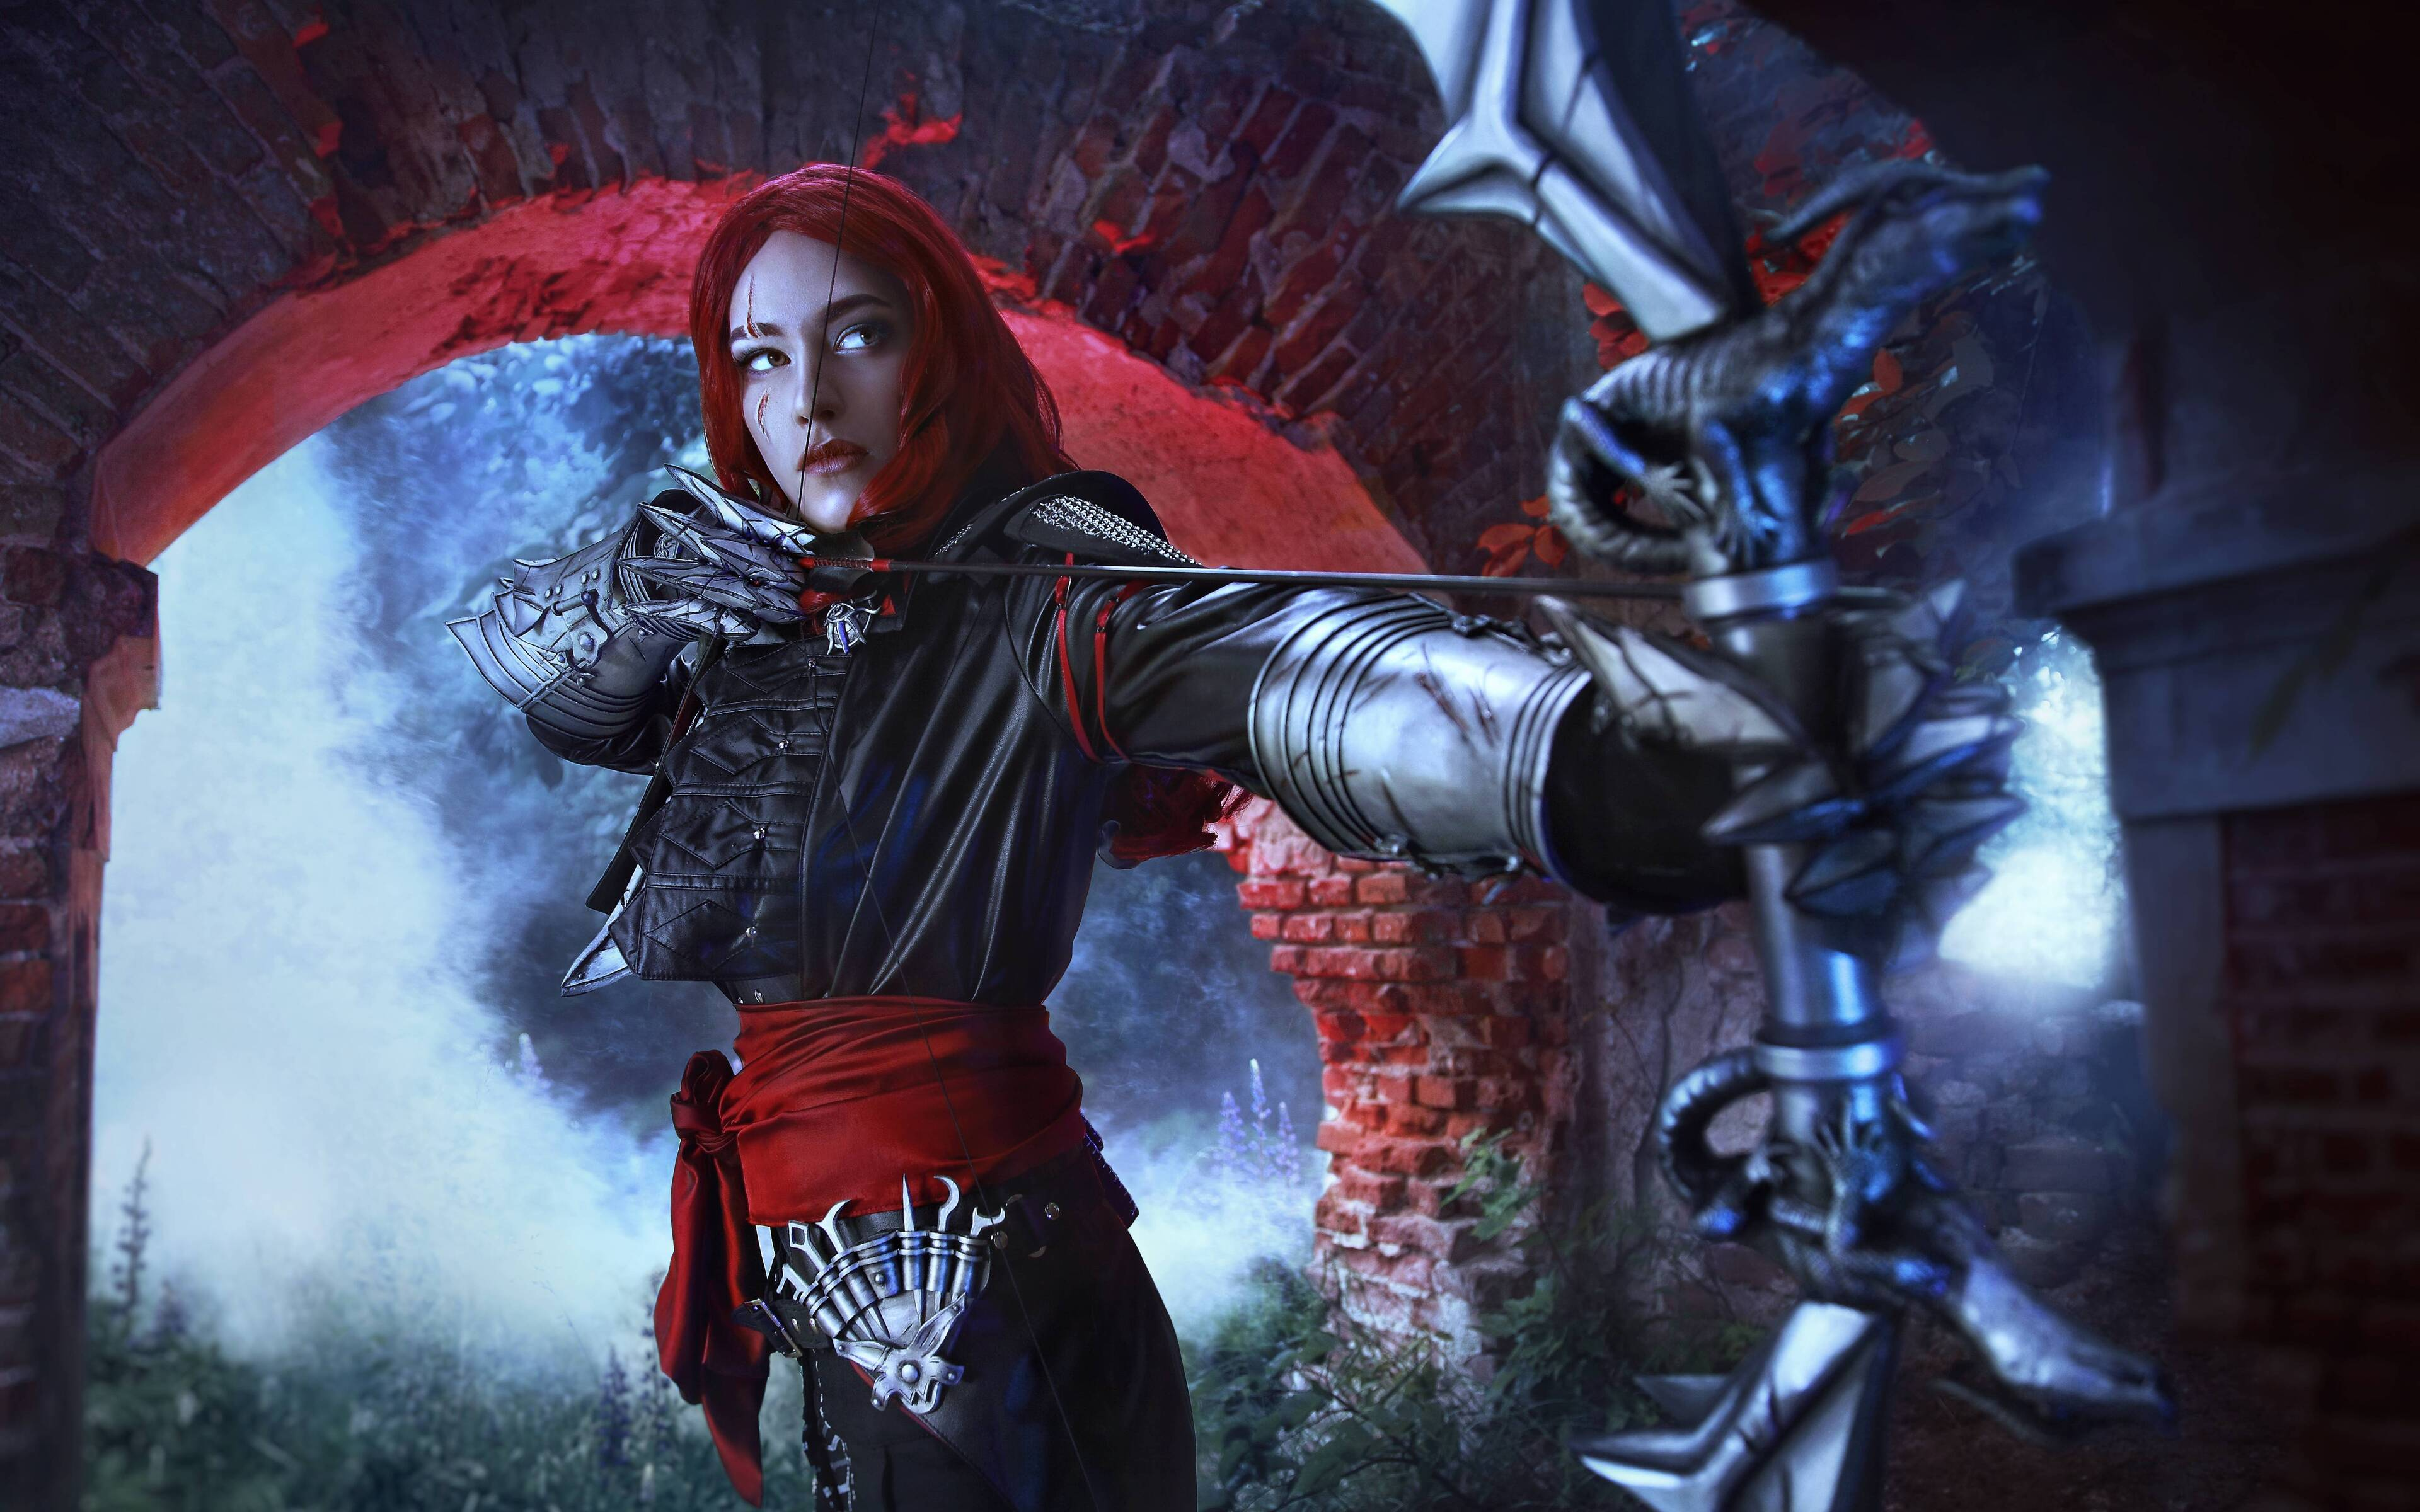 3840x2400 Dragon Age Inquisition Cosplay 4k Hd 4k Wallpapers